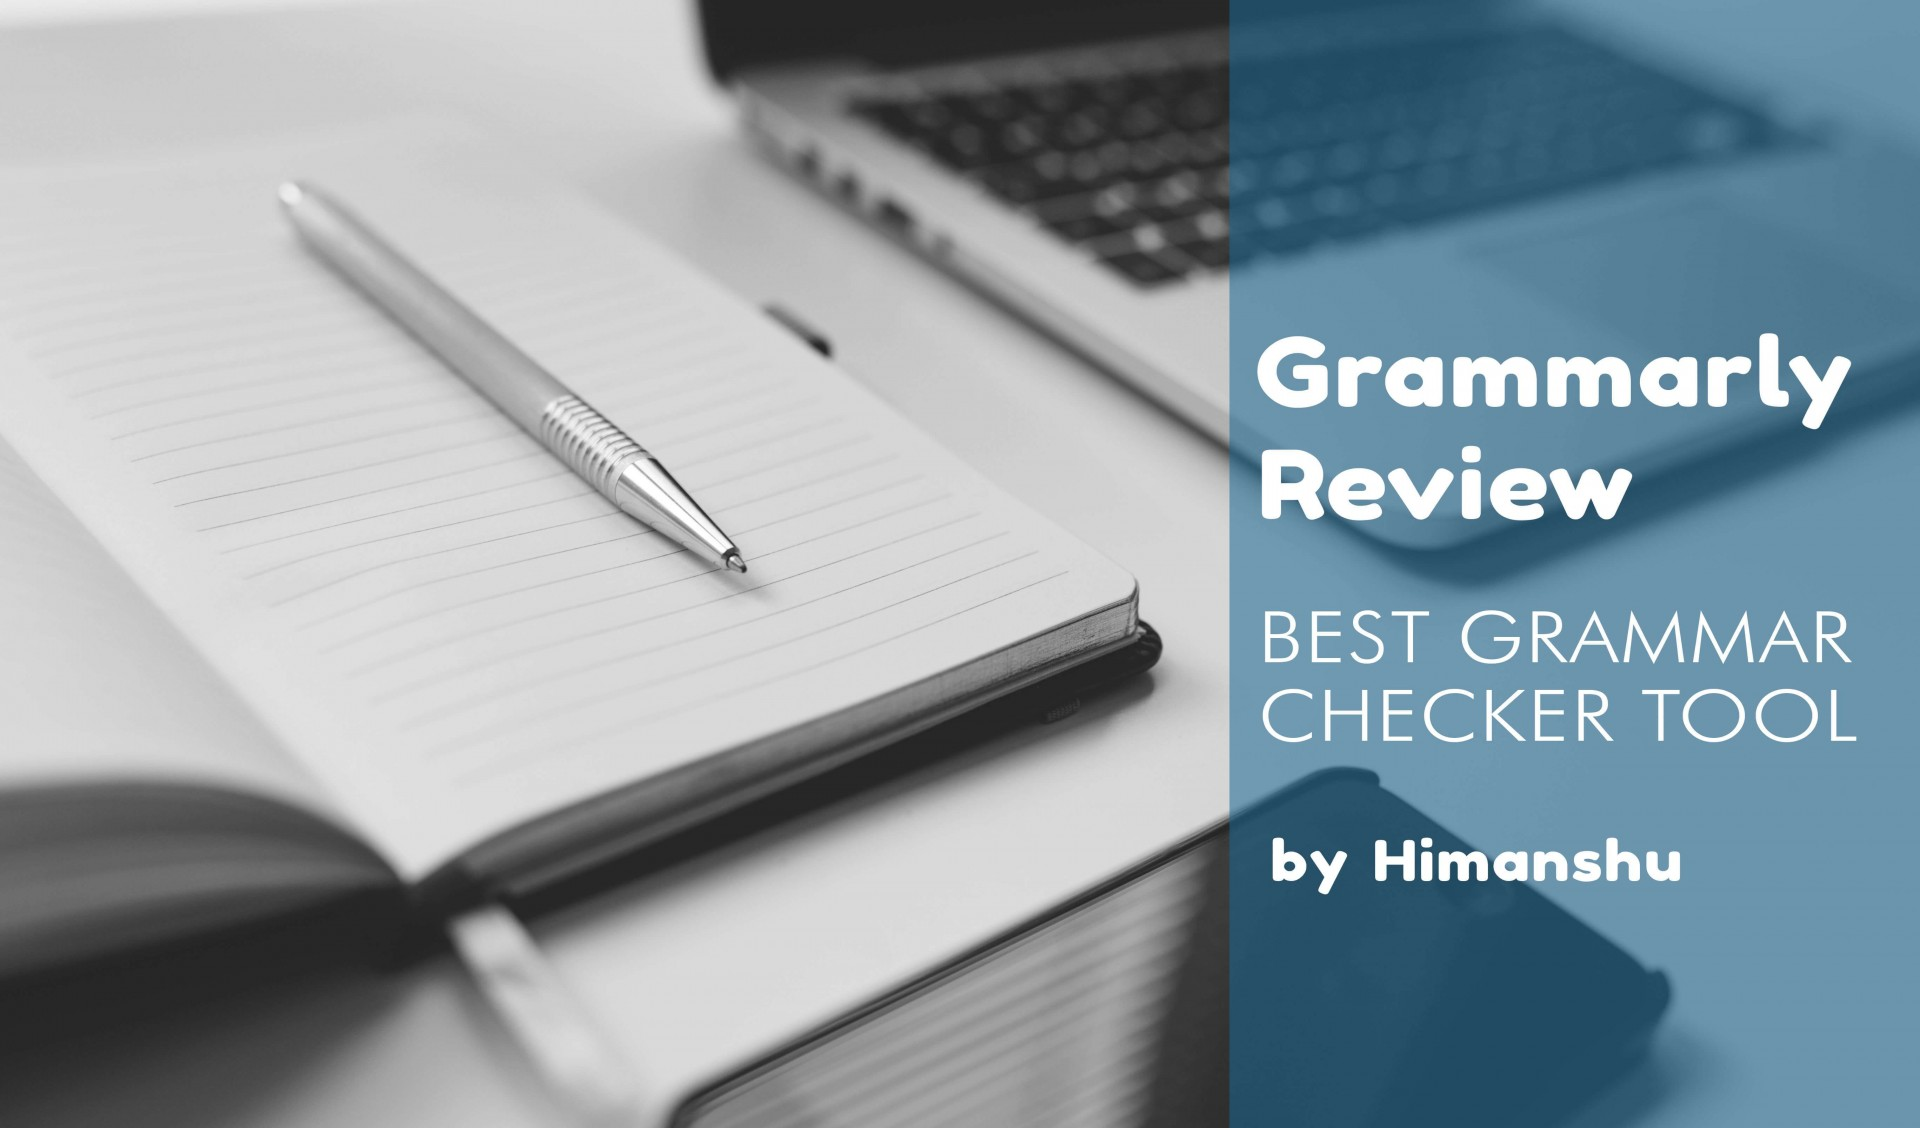 013 Essay Checker Grammar Grammarly Review Best My Write Online Re Reviews Example Fantastic Grab 1920